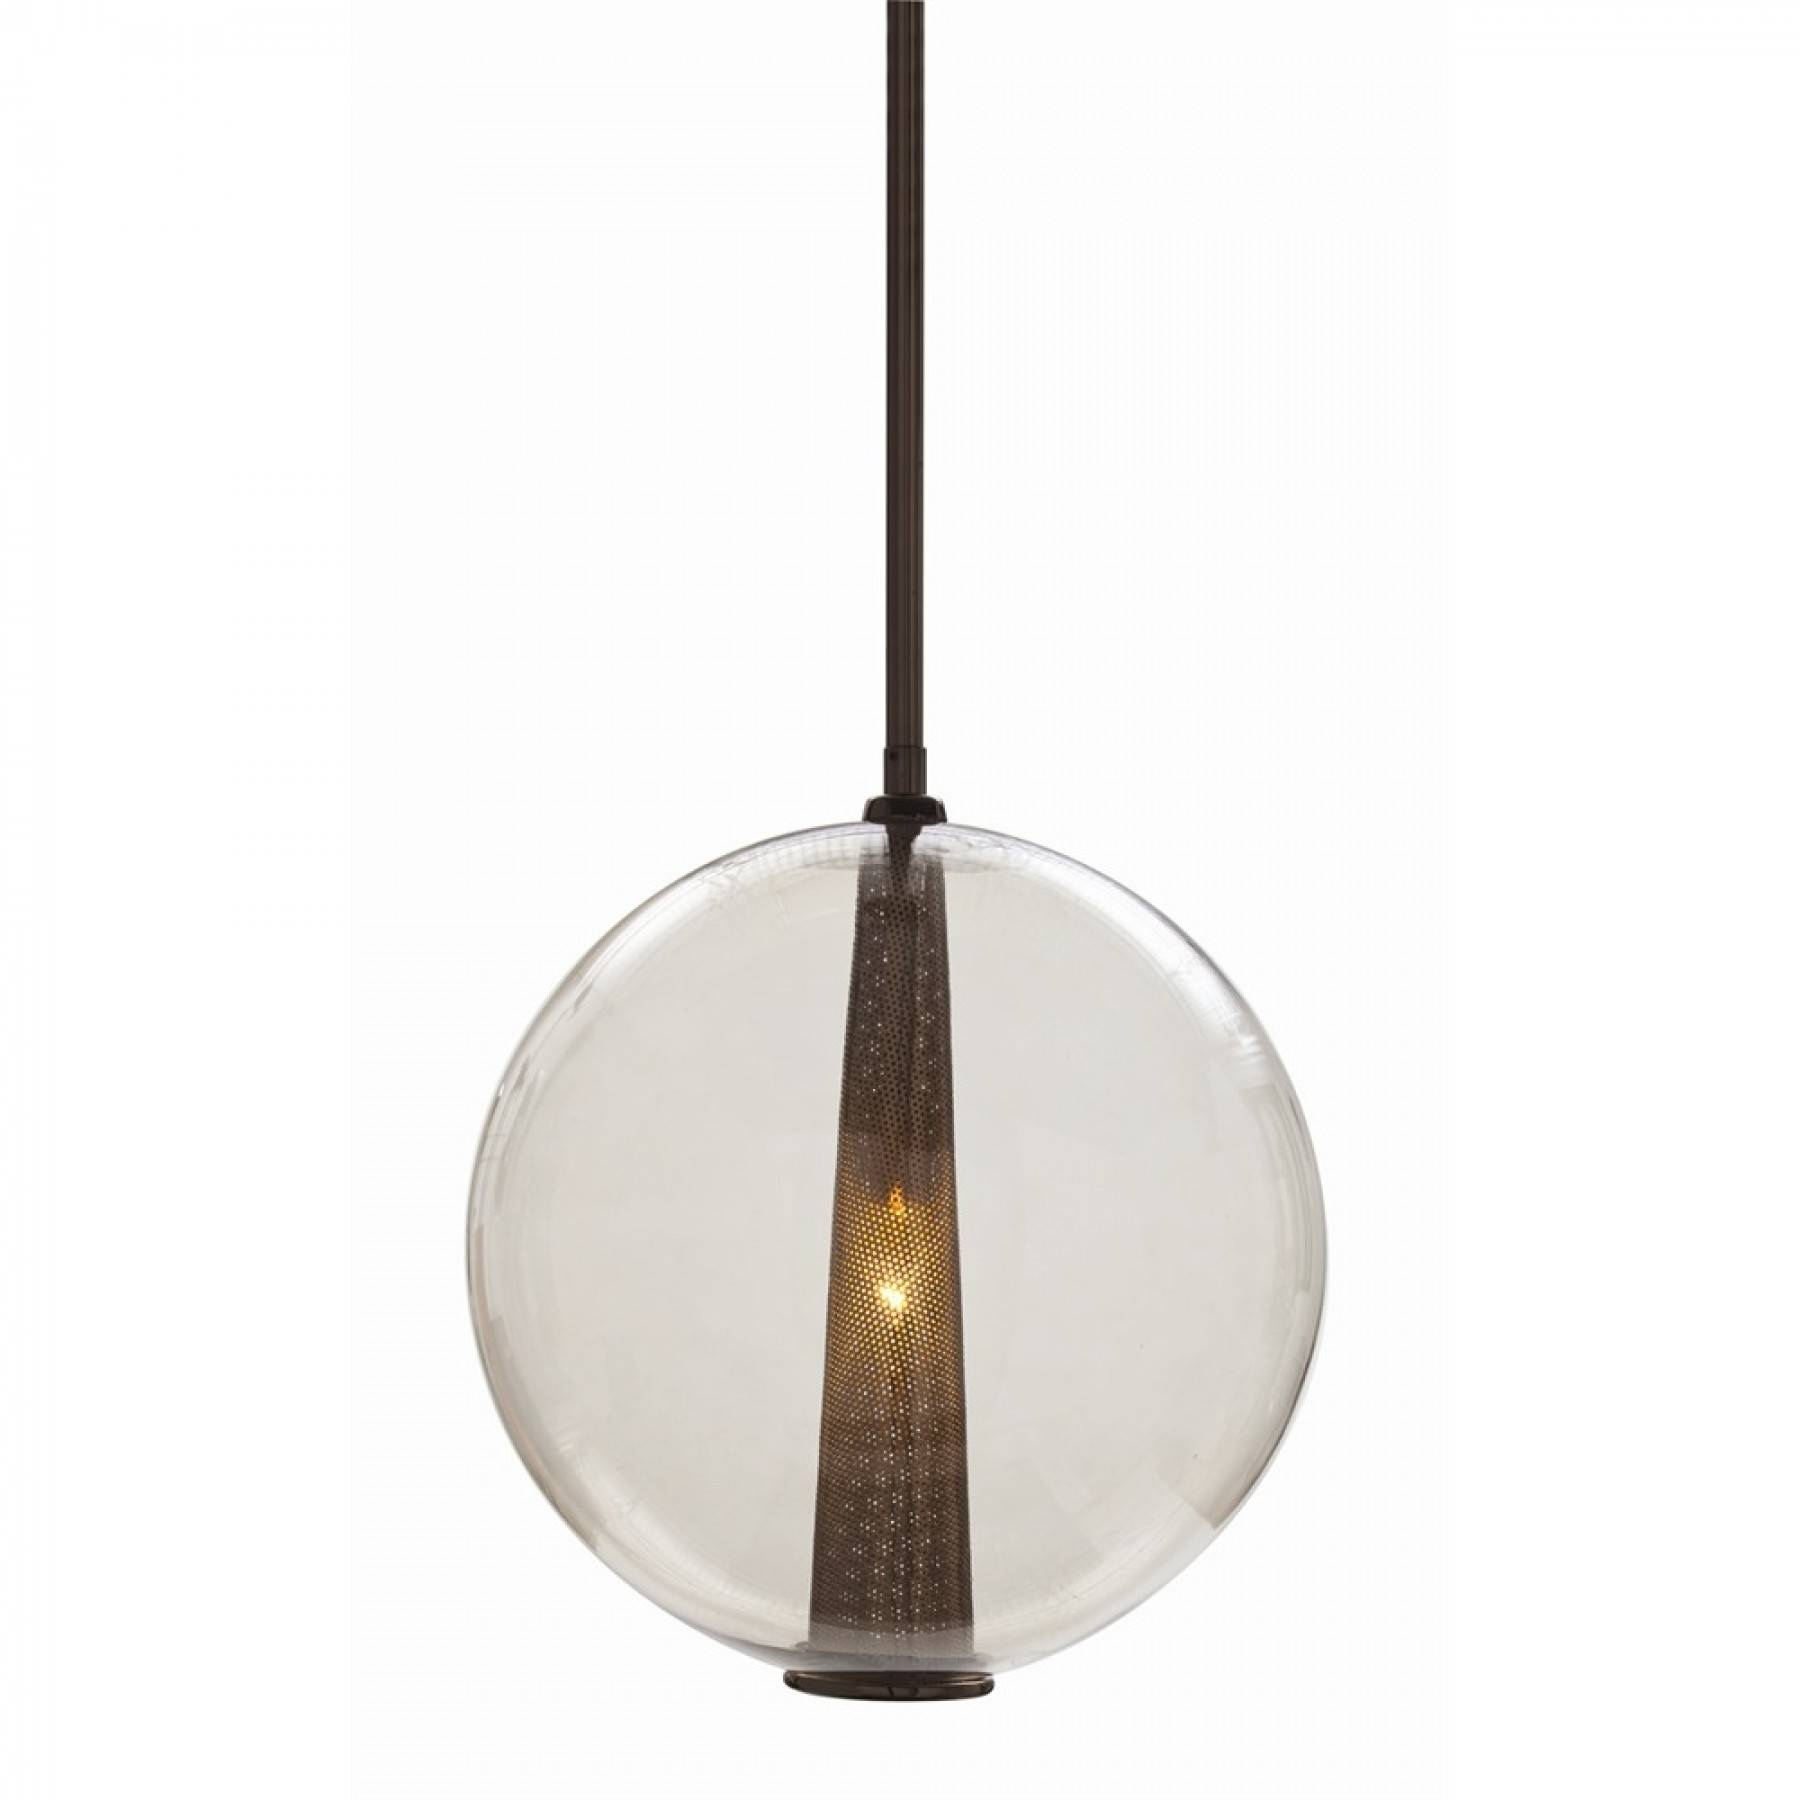 Adjustable Large Pendant throughout Caviar Lights (Image 3 of 15)